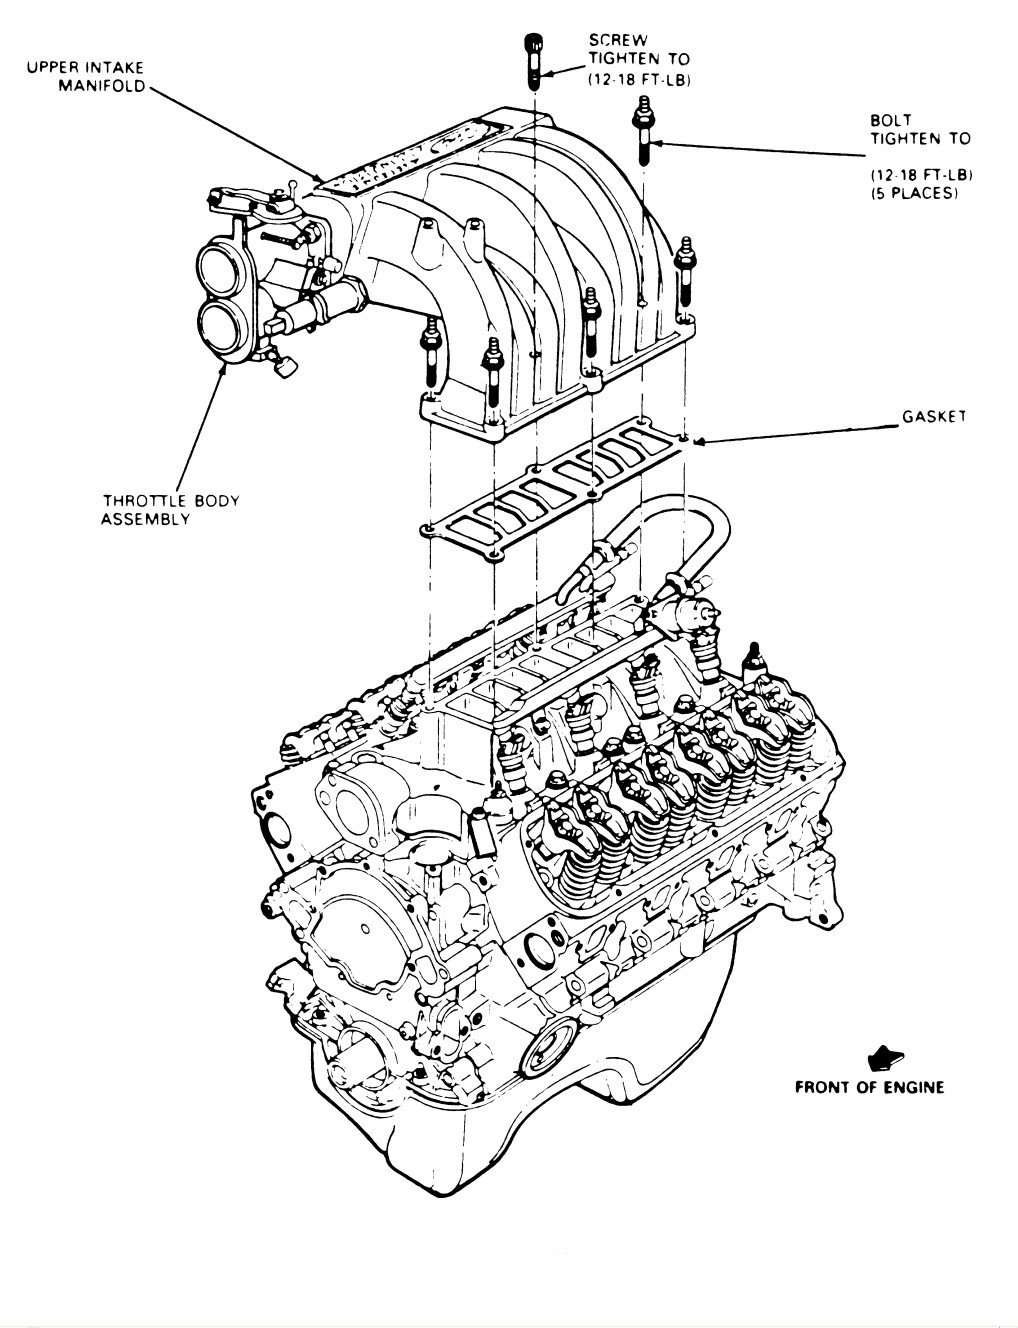 Ford F150 5 0 Engine Diagram on 2007 ford f350 fuse diagram